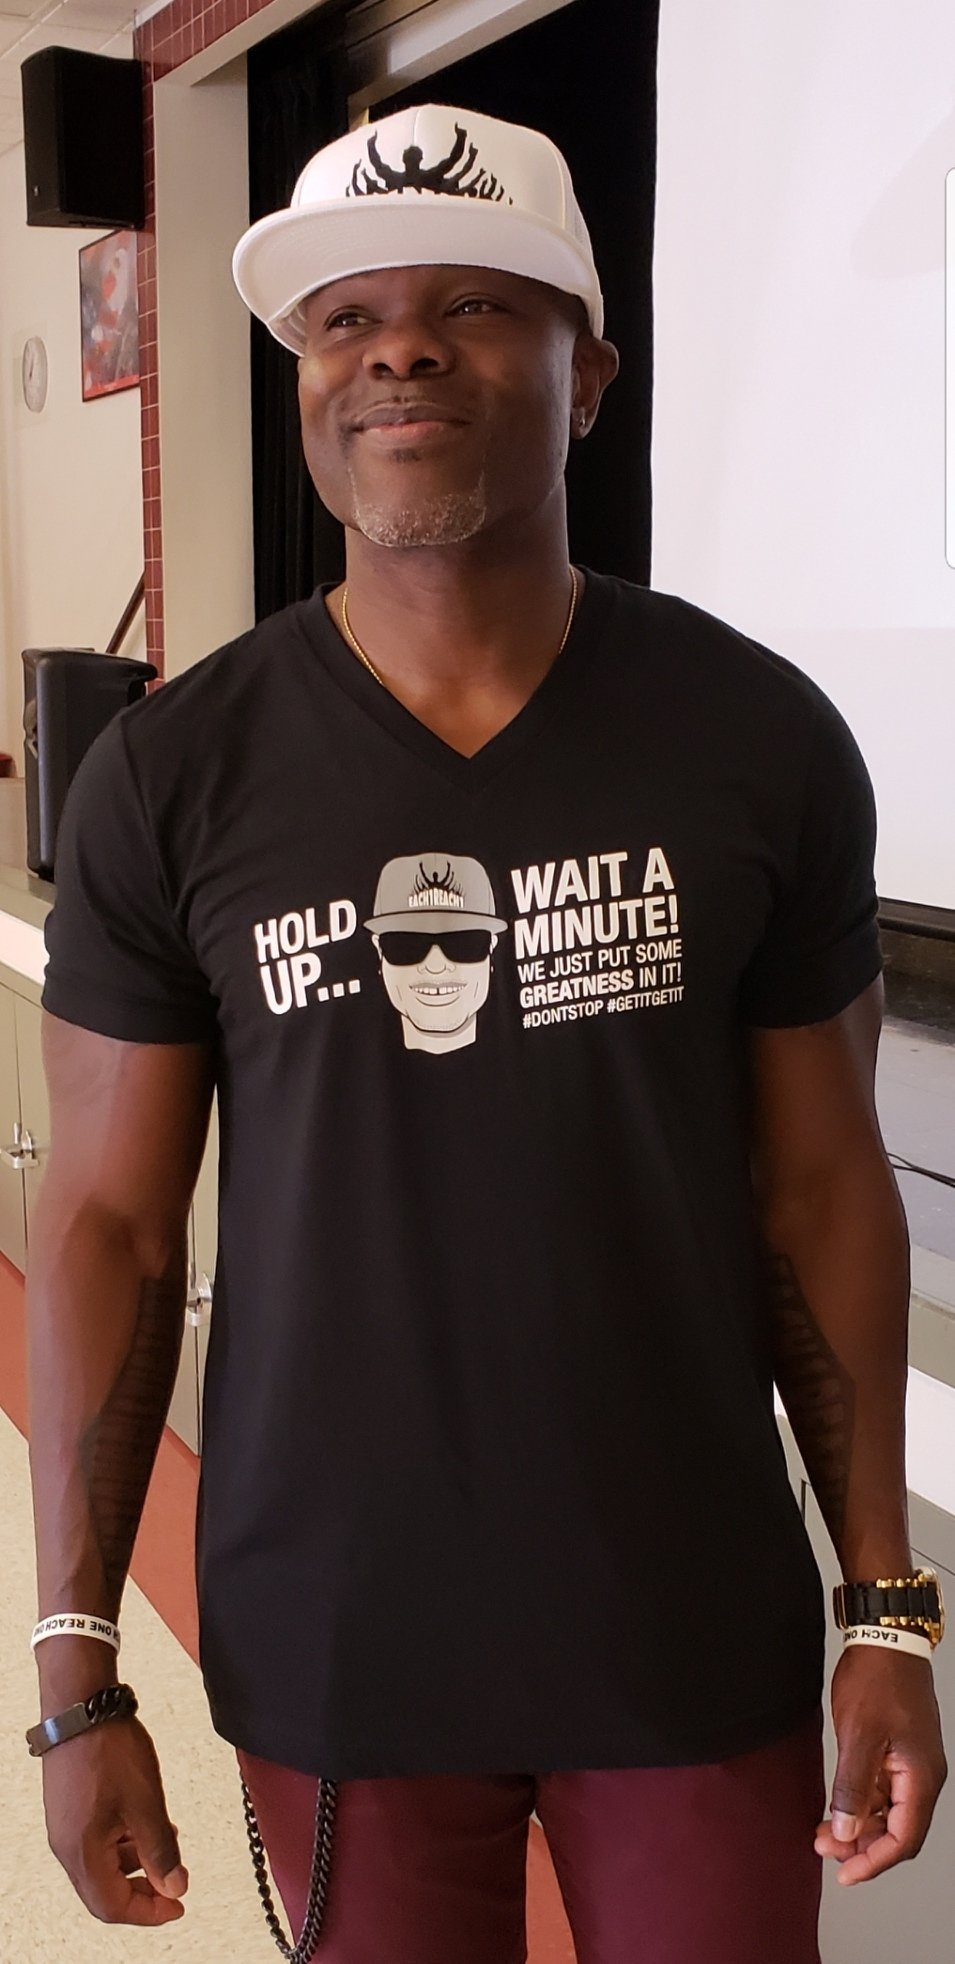 HOLD UP...WAIT A MINUTE! T-SHIRT 00031